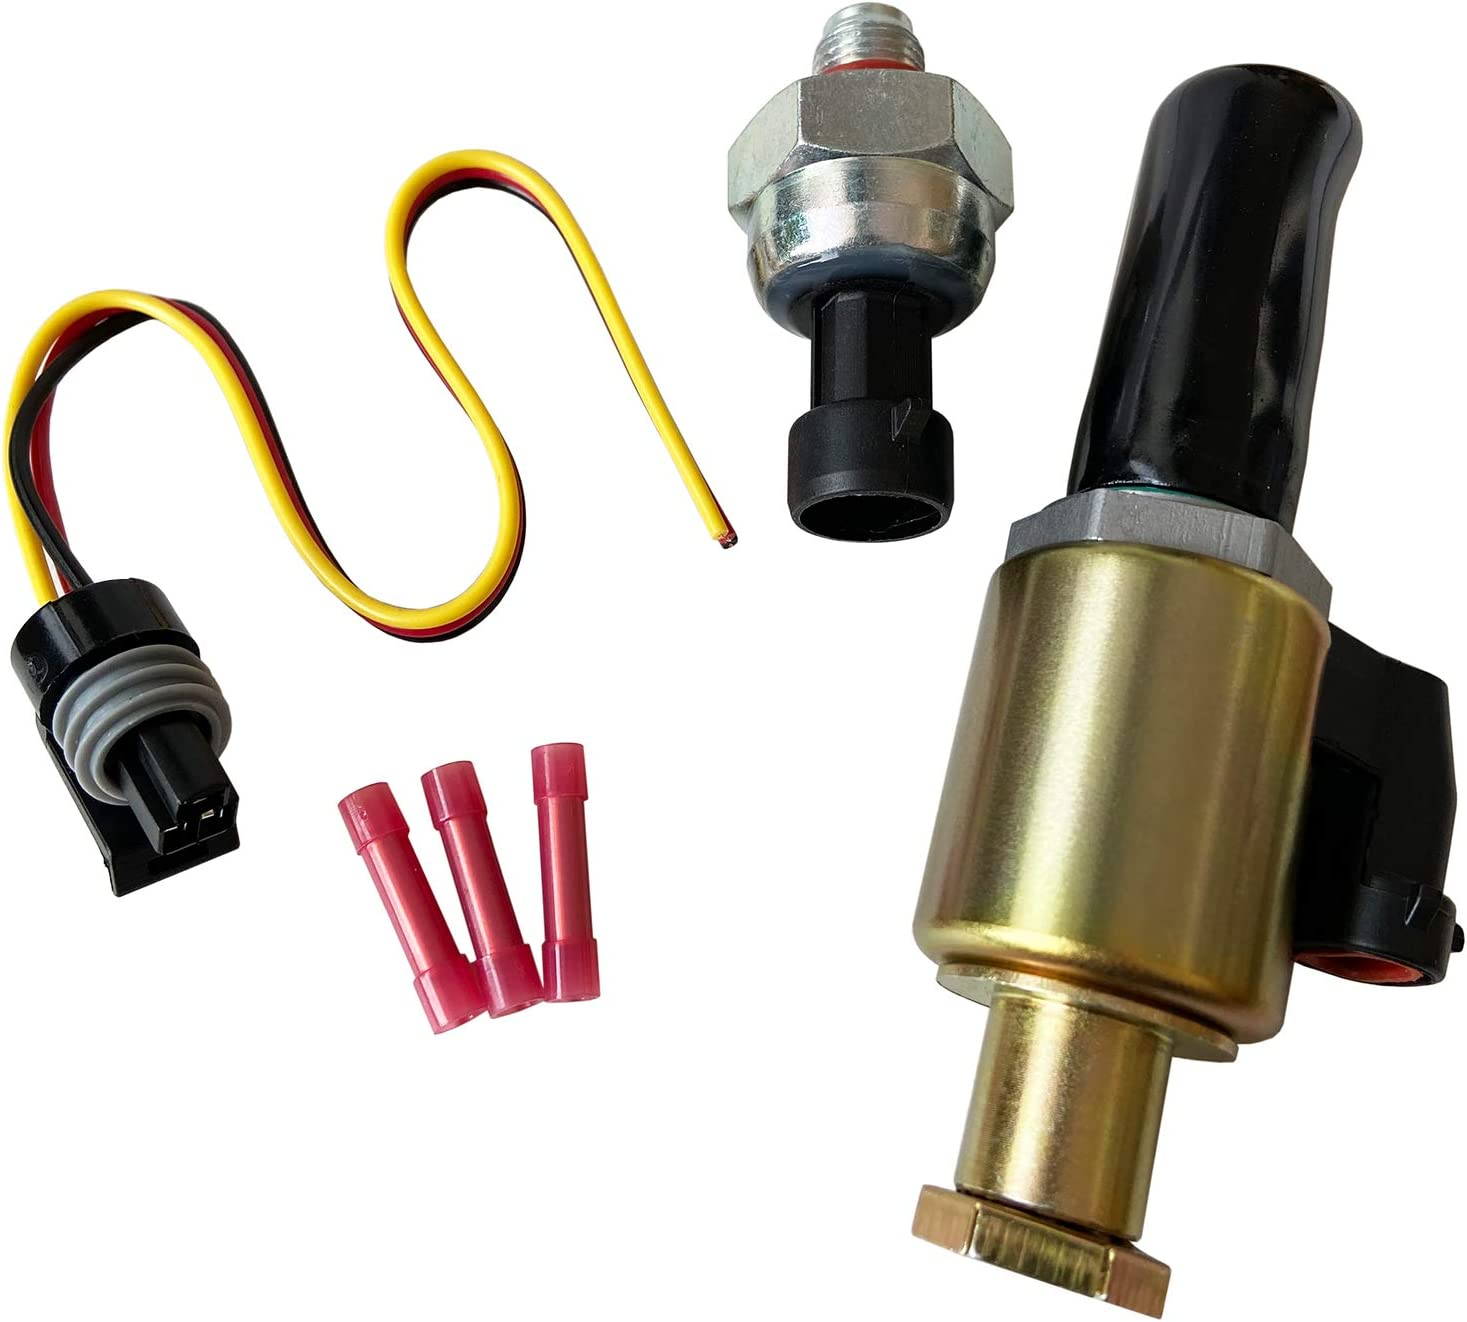 F250 Super Duty CM5013 NEW Replacement Injector Pressure Regulator Valve For Ford Powerstroke 7.3L Diesel Engines F81Z9C968AA Excursion E350 Club Wagon F5TZ9C968A 1829856C91 F350